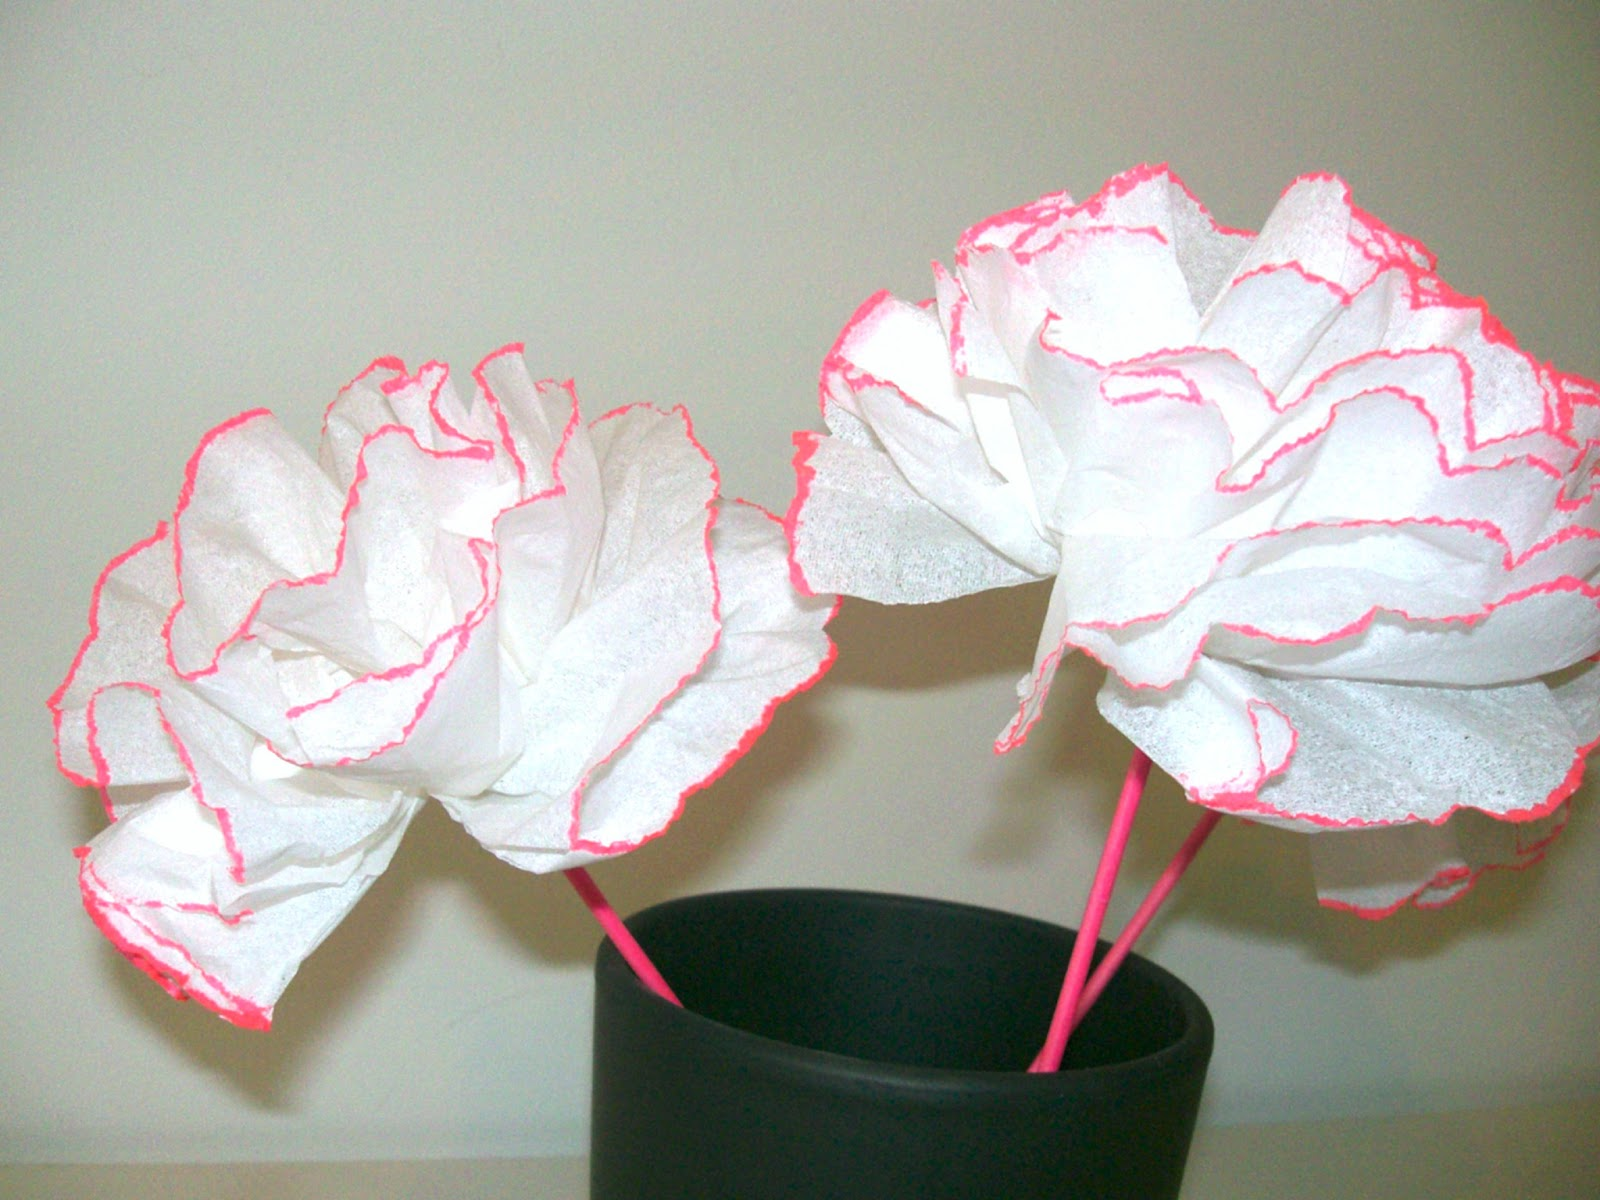 Gabulle in wonderland fleurs pompons rose n on - Faire des roses en papier ...